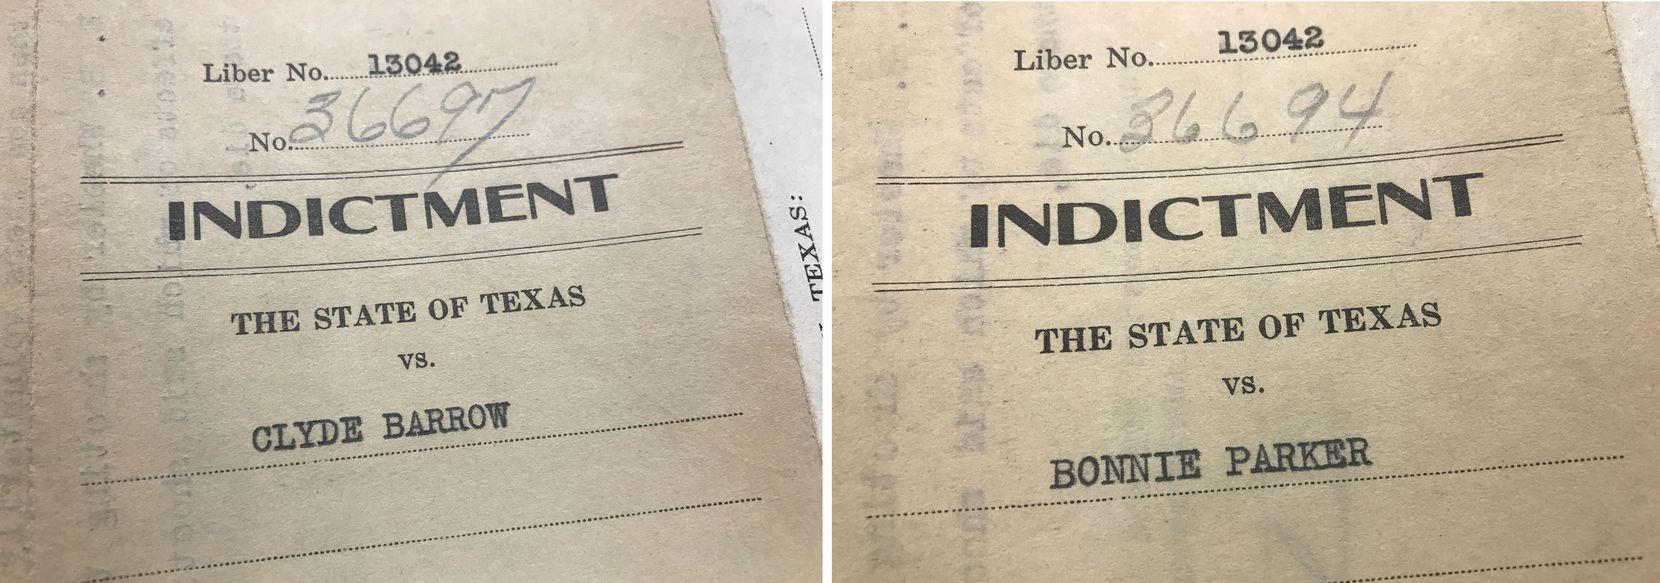 Pages from the original indictments of Bonnie and Clyde for murdering two lawmen in Grapevine in the 1930s, which were recently found by a Tarrant County clerk as she was scanning in old documents.